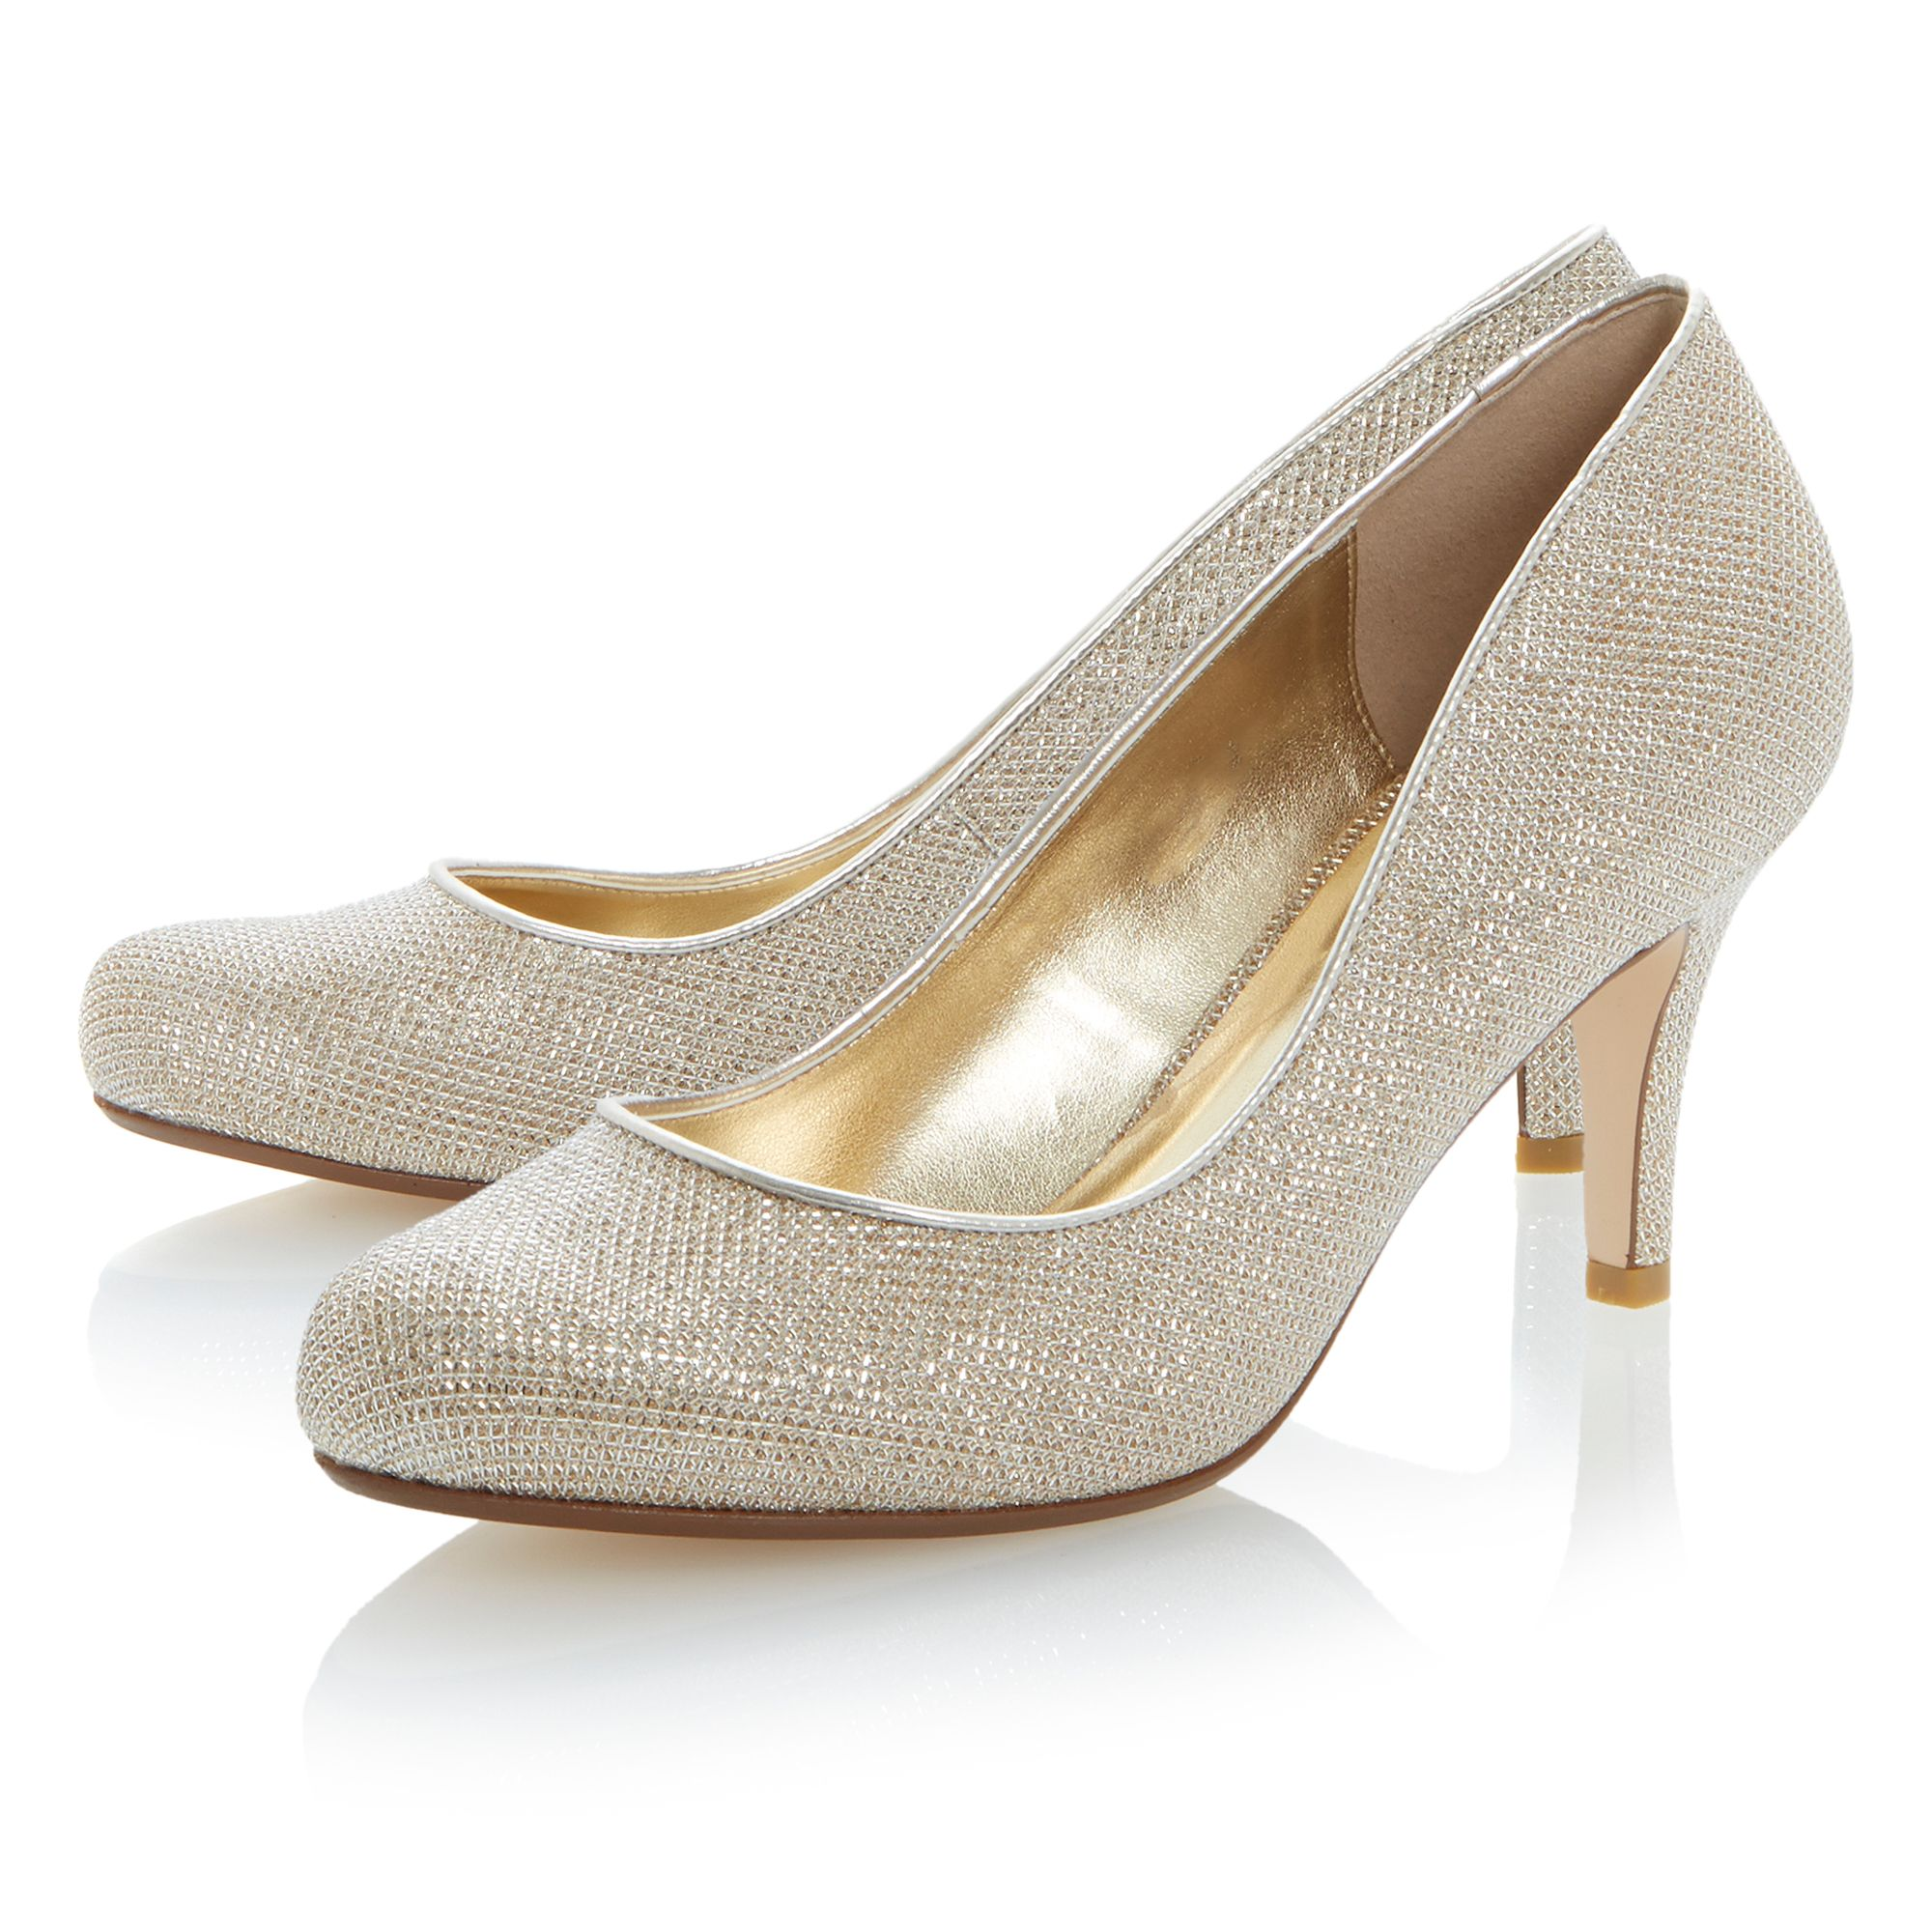 Amelia round toe stiletto court shoes